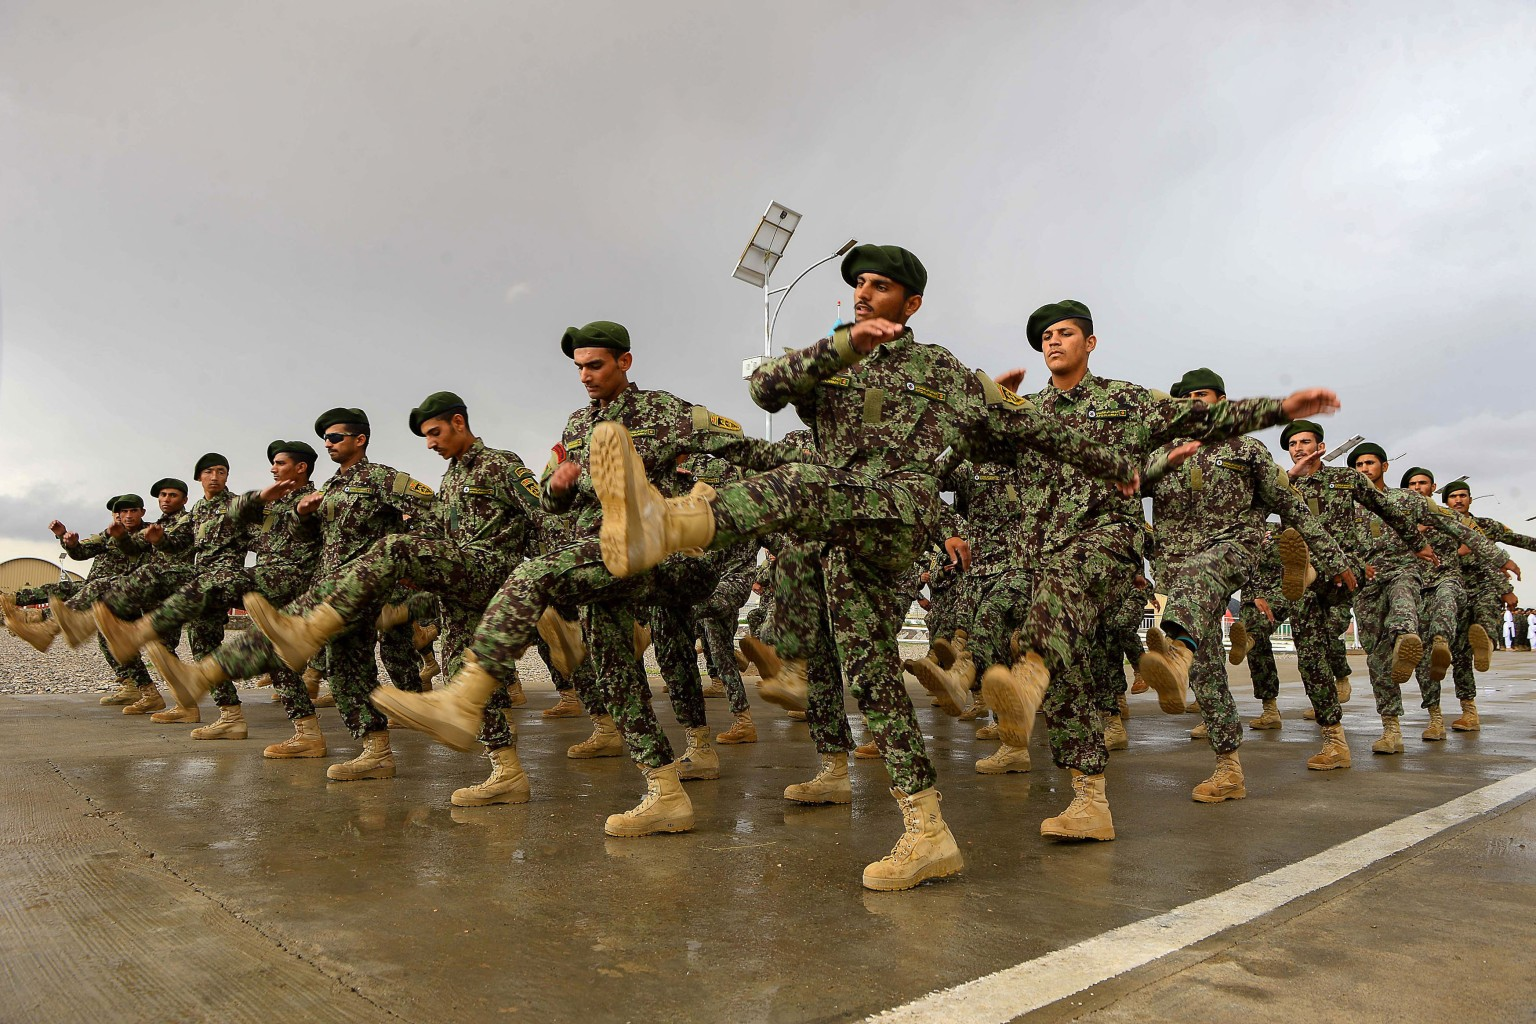 Afghan National Army soldiers march during a graduation ceremony at a training center in Herat province on April 15. HOSHANG HASHIMI/AFP/Getty Images